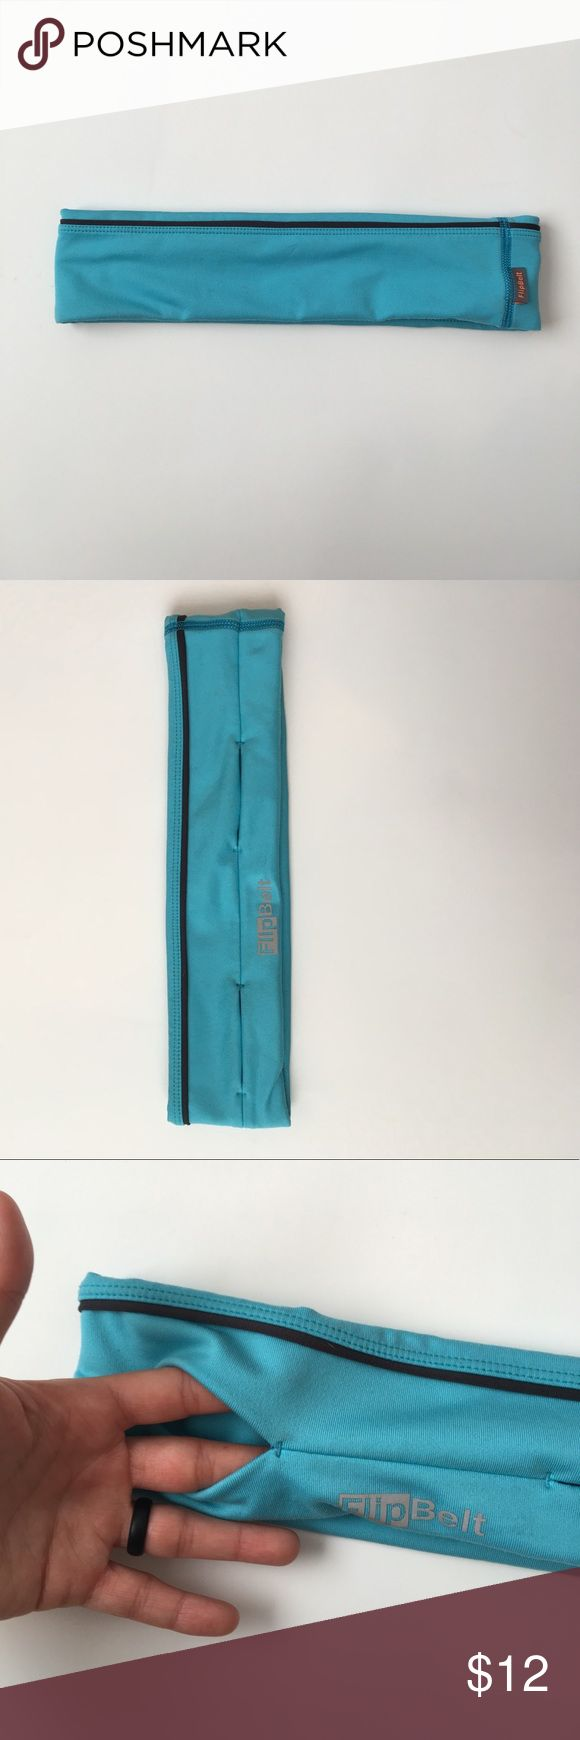 Flip belt Flip Belt • Blue • Medium • Holds key, phone, ID, etc. • small spots (see pics) • if you have questions ask them! This is great for runs, hikes, or being out and about! I have loved using this and being able to be hand free! flip belt Other